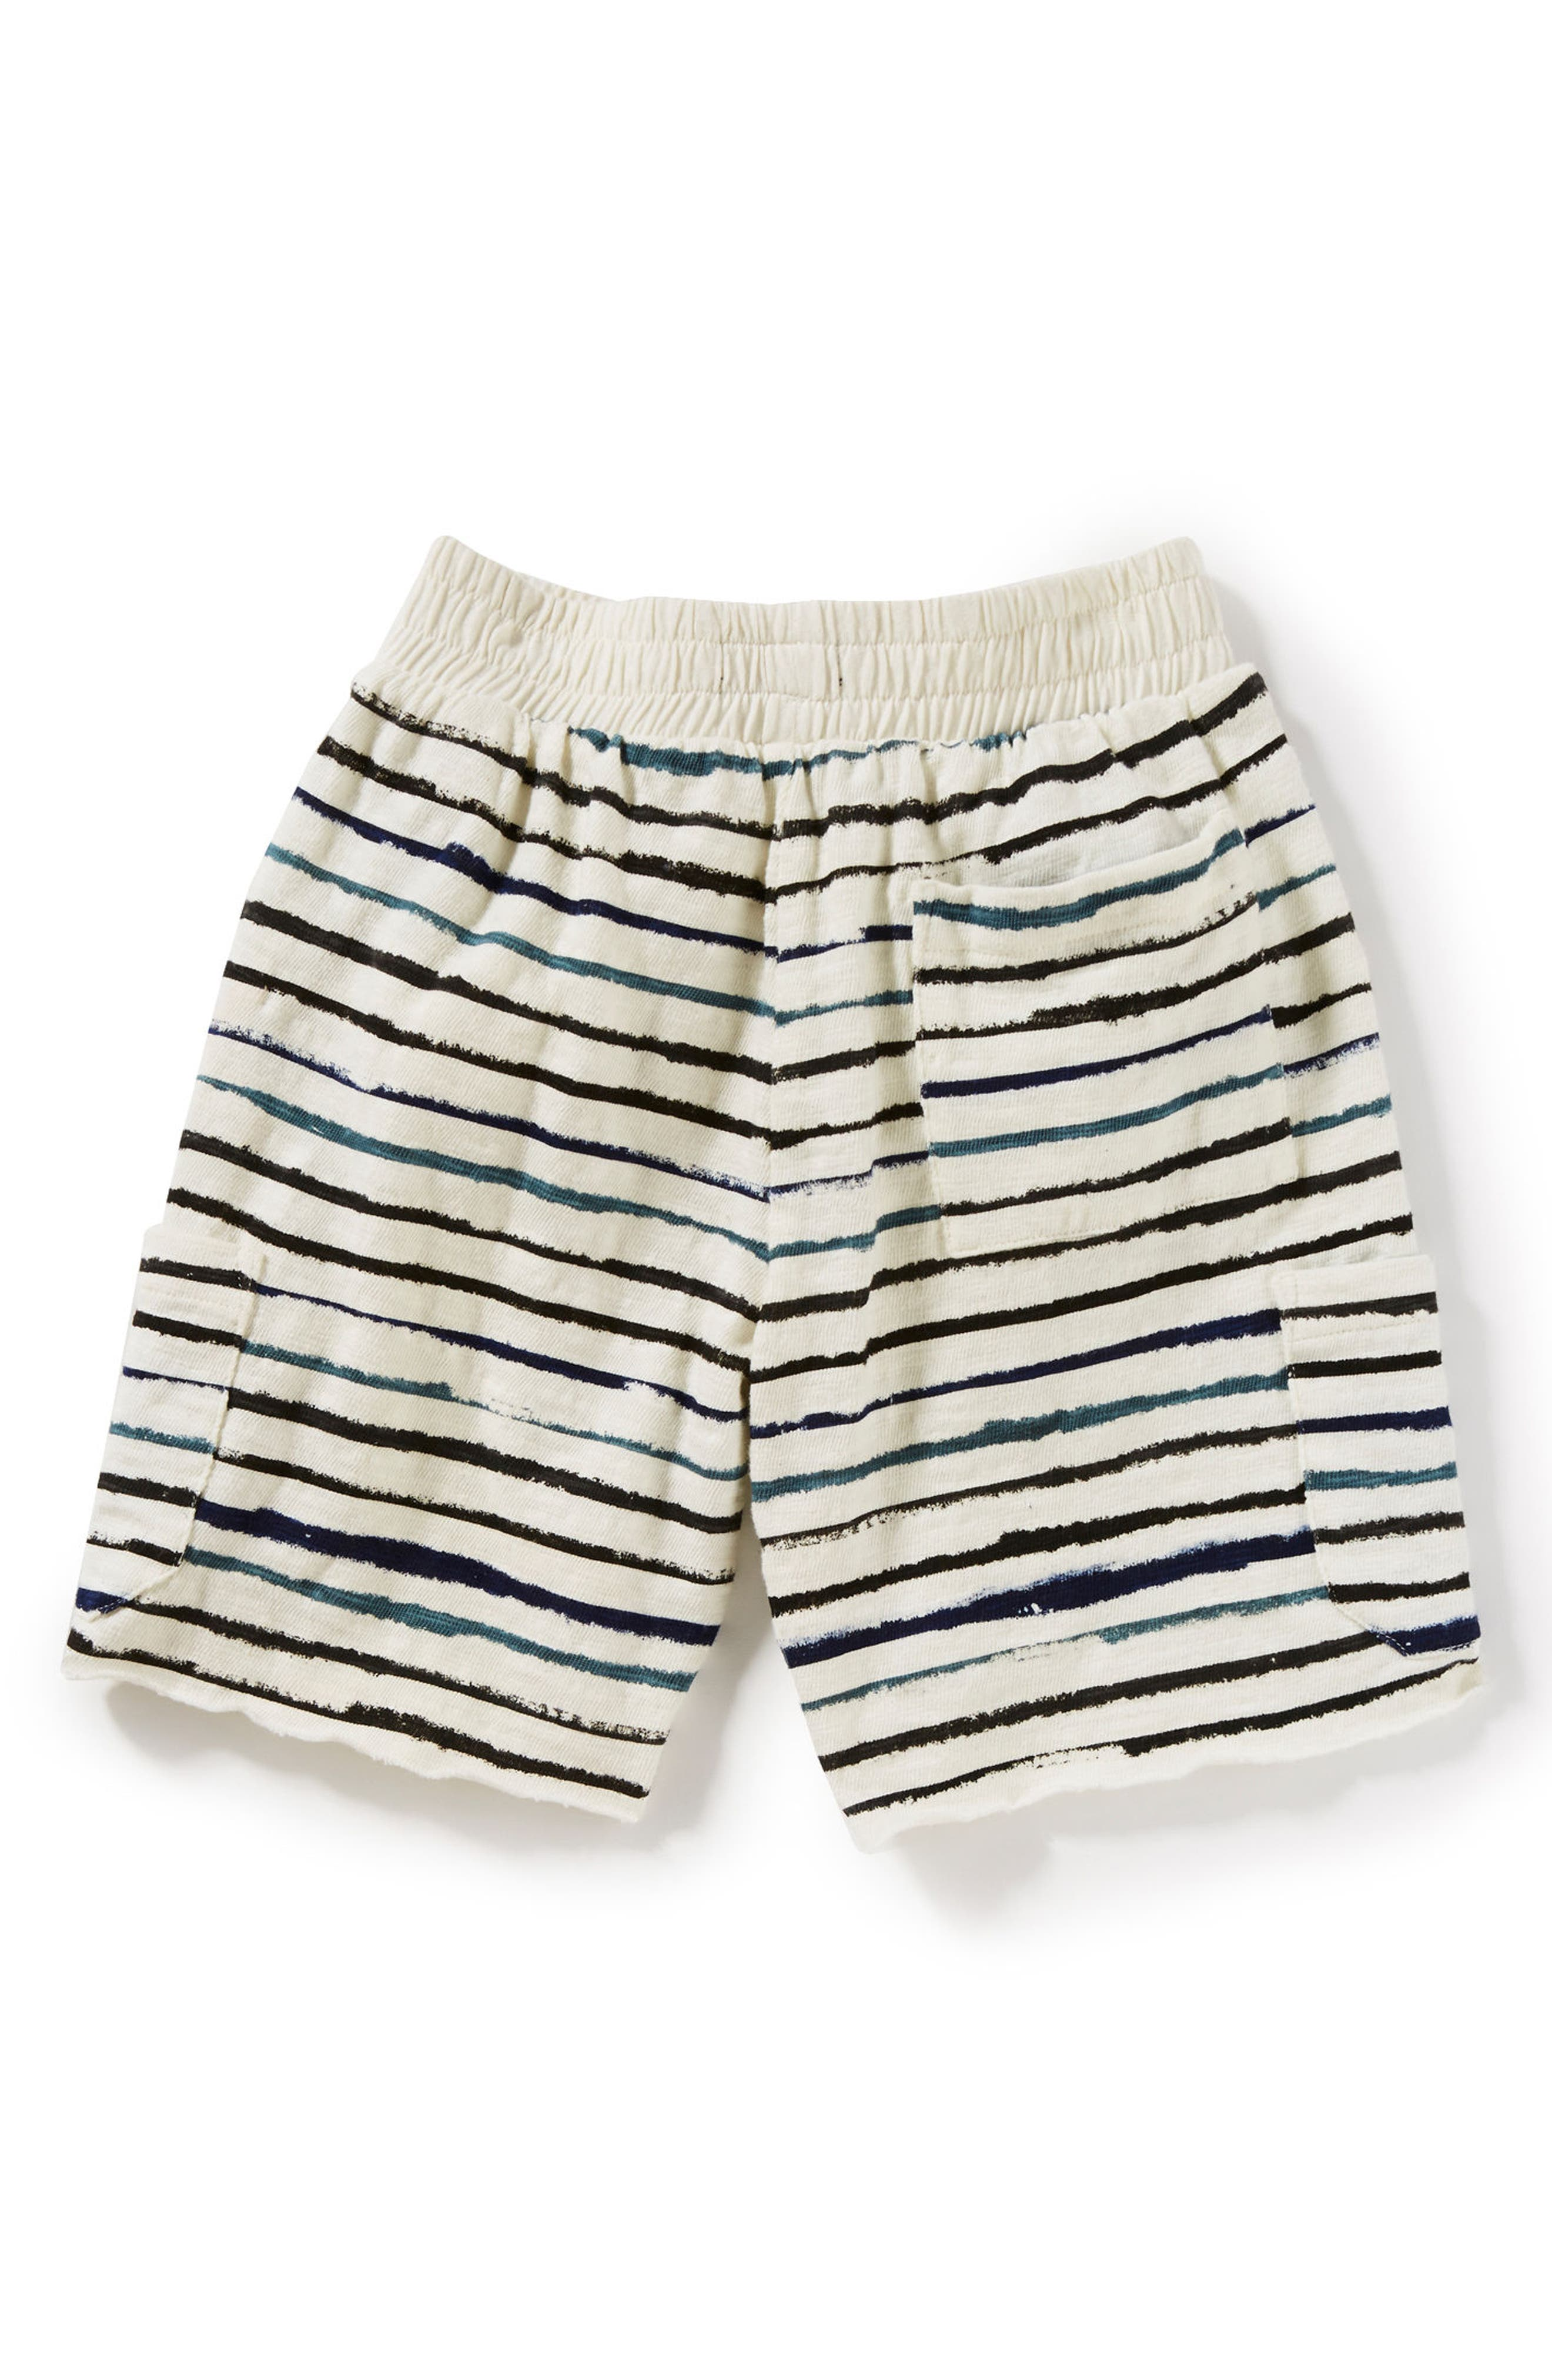 Alternate Image 2  - Peek Asher Stripe Shorts (Toddler Boys, Little Boys & Big Boys)